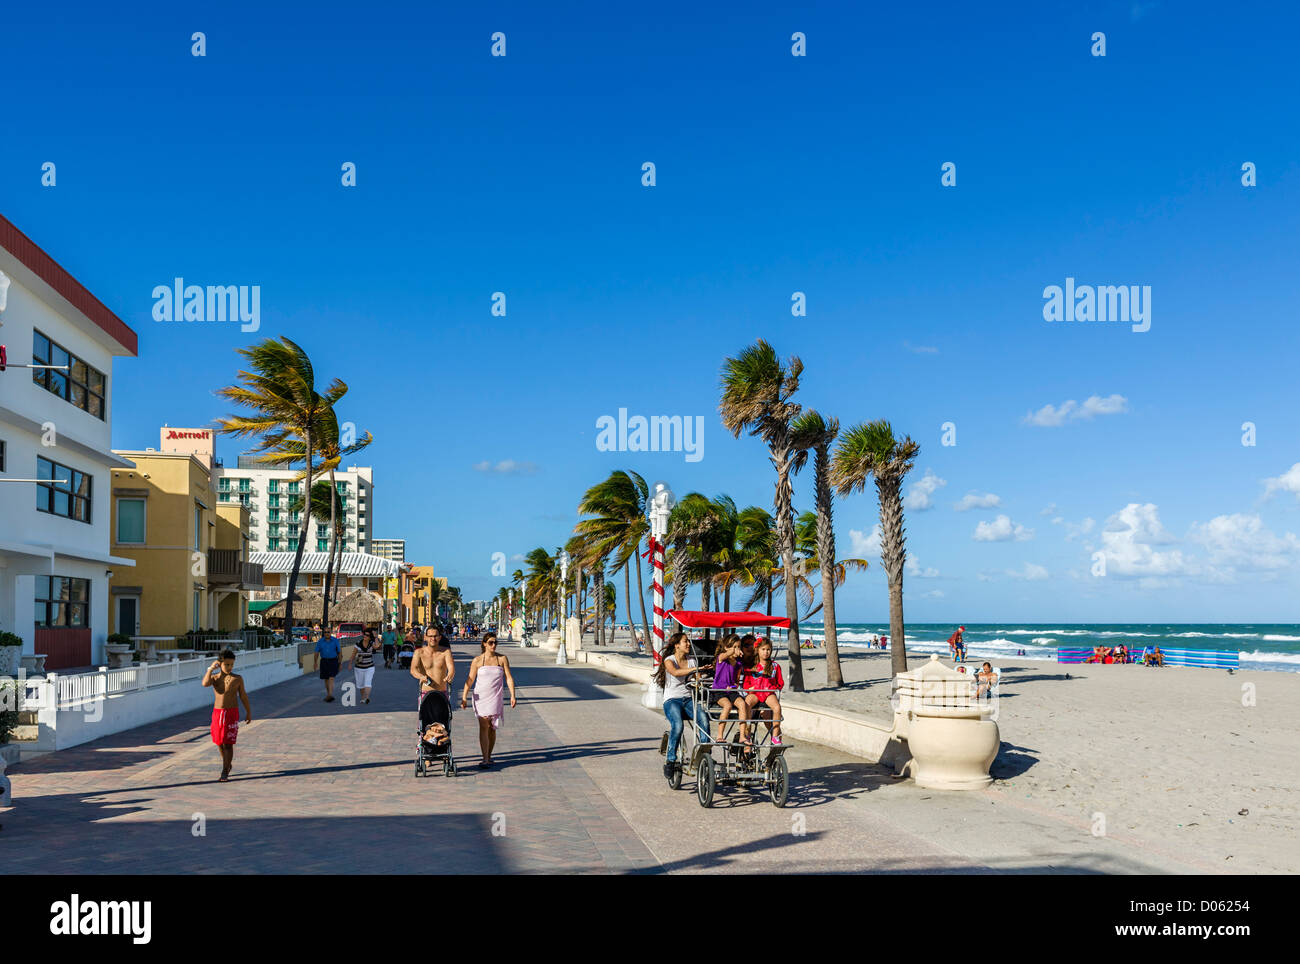 The Broadwalk in Hollywood, near Fort Lauderdale, Broward County, Gold Coast, Florida, USA - Stock Image